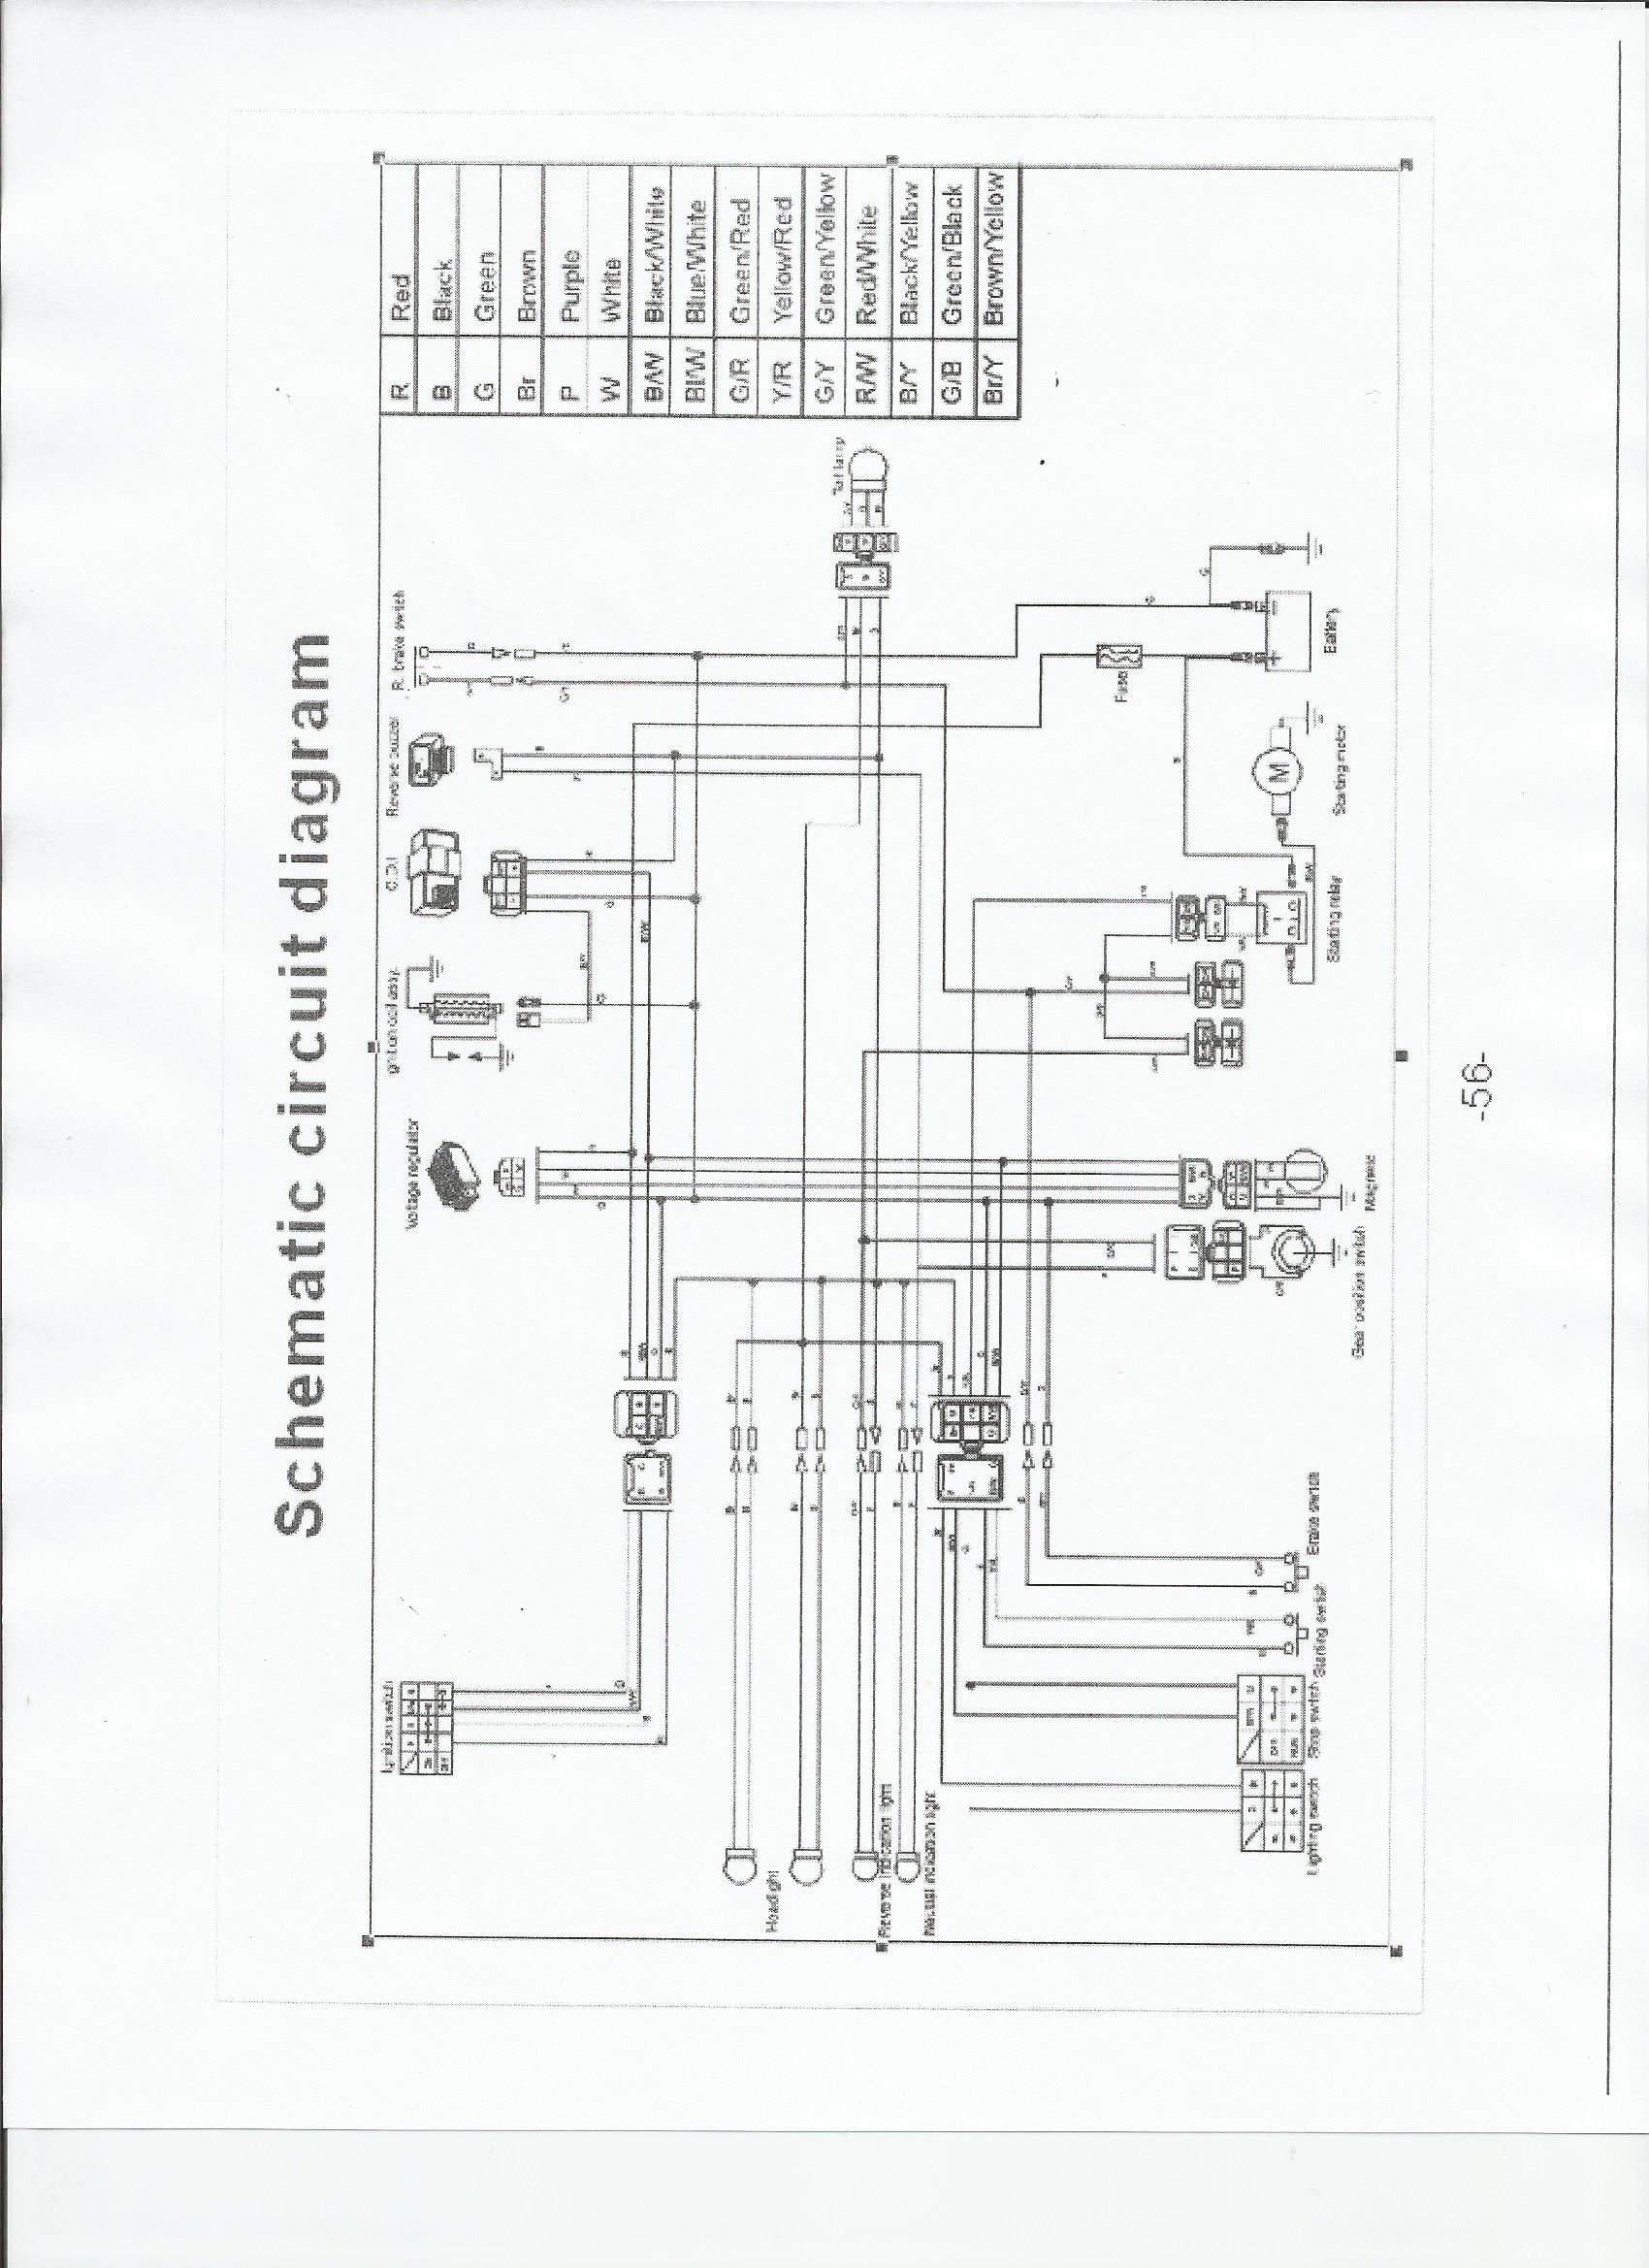 tao tao wiring schematic taotao mini and youth atv wiring schematic familygokarts support chinese 110 atv wiring diagram at suagrazia.org